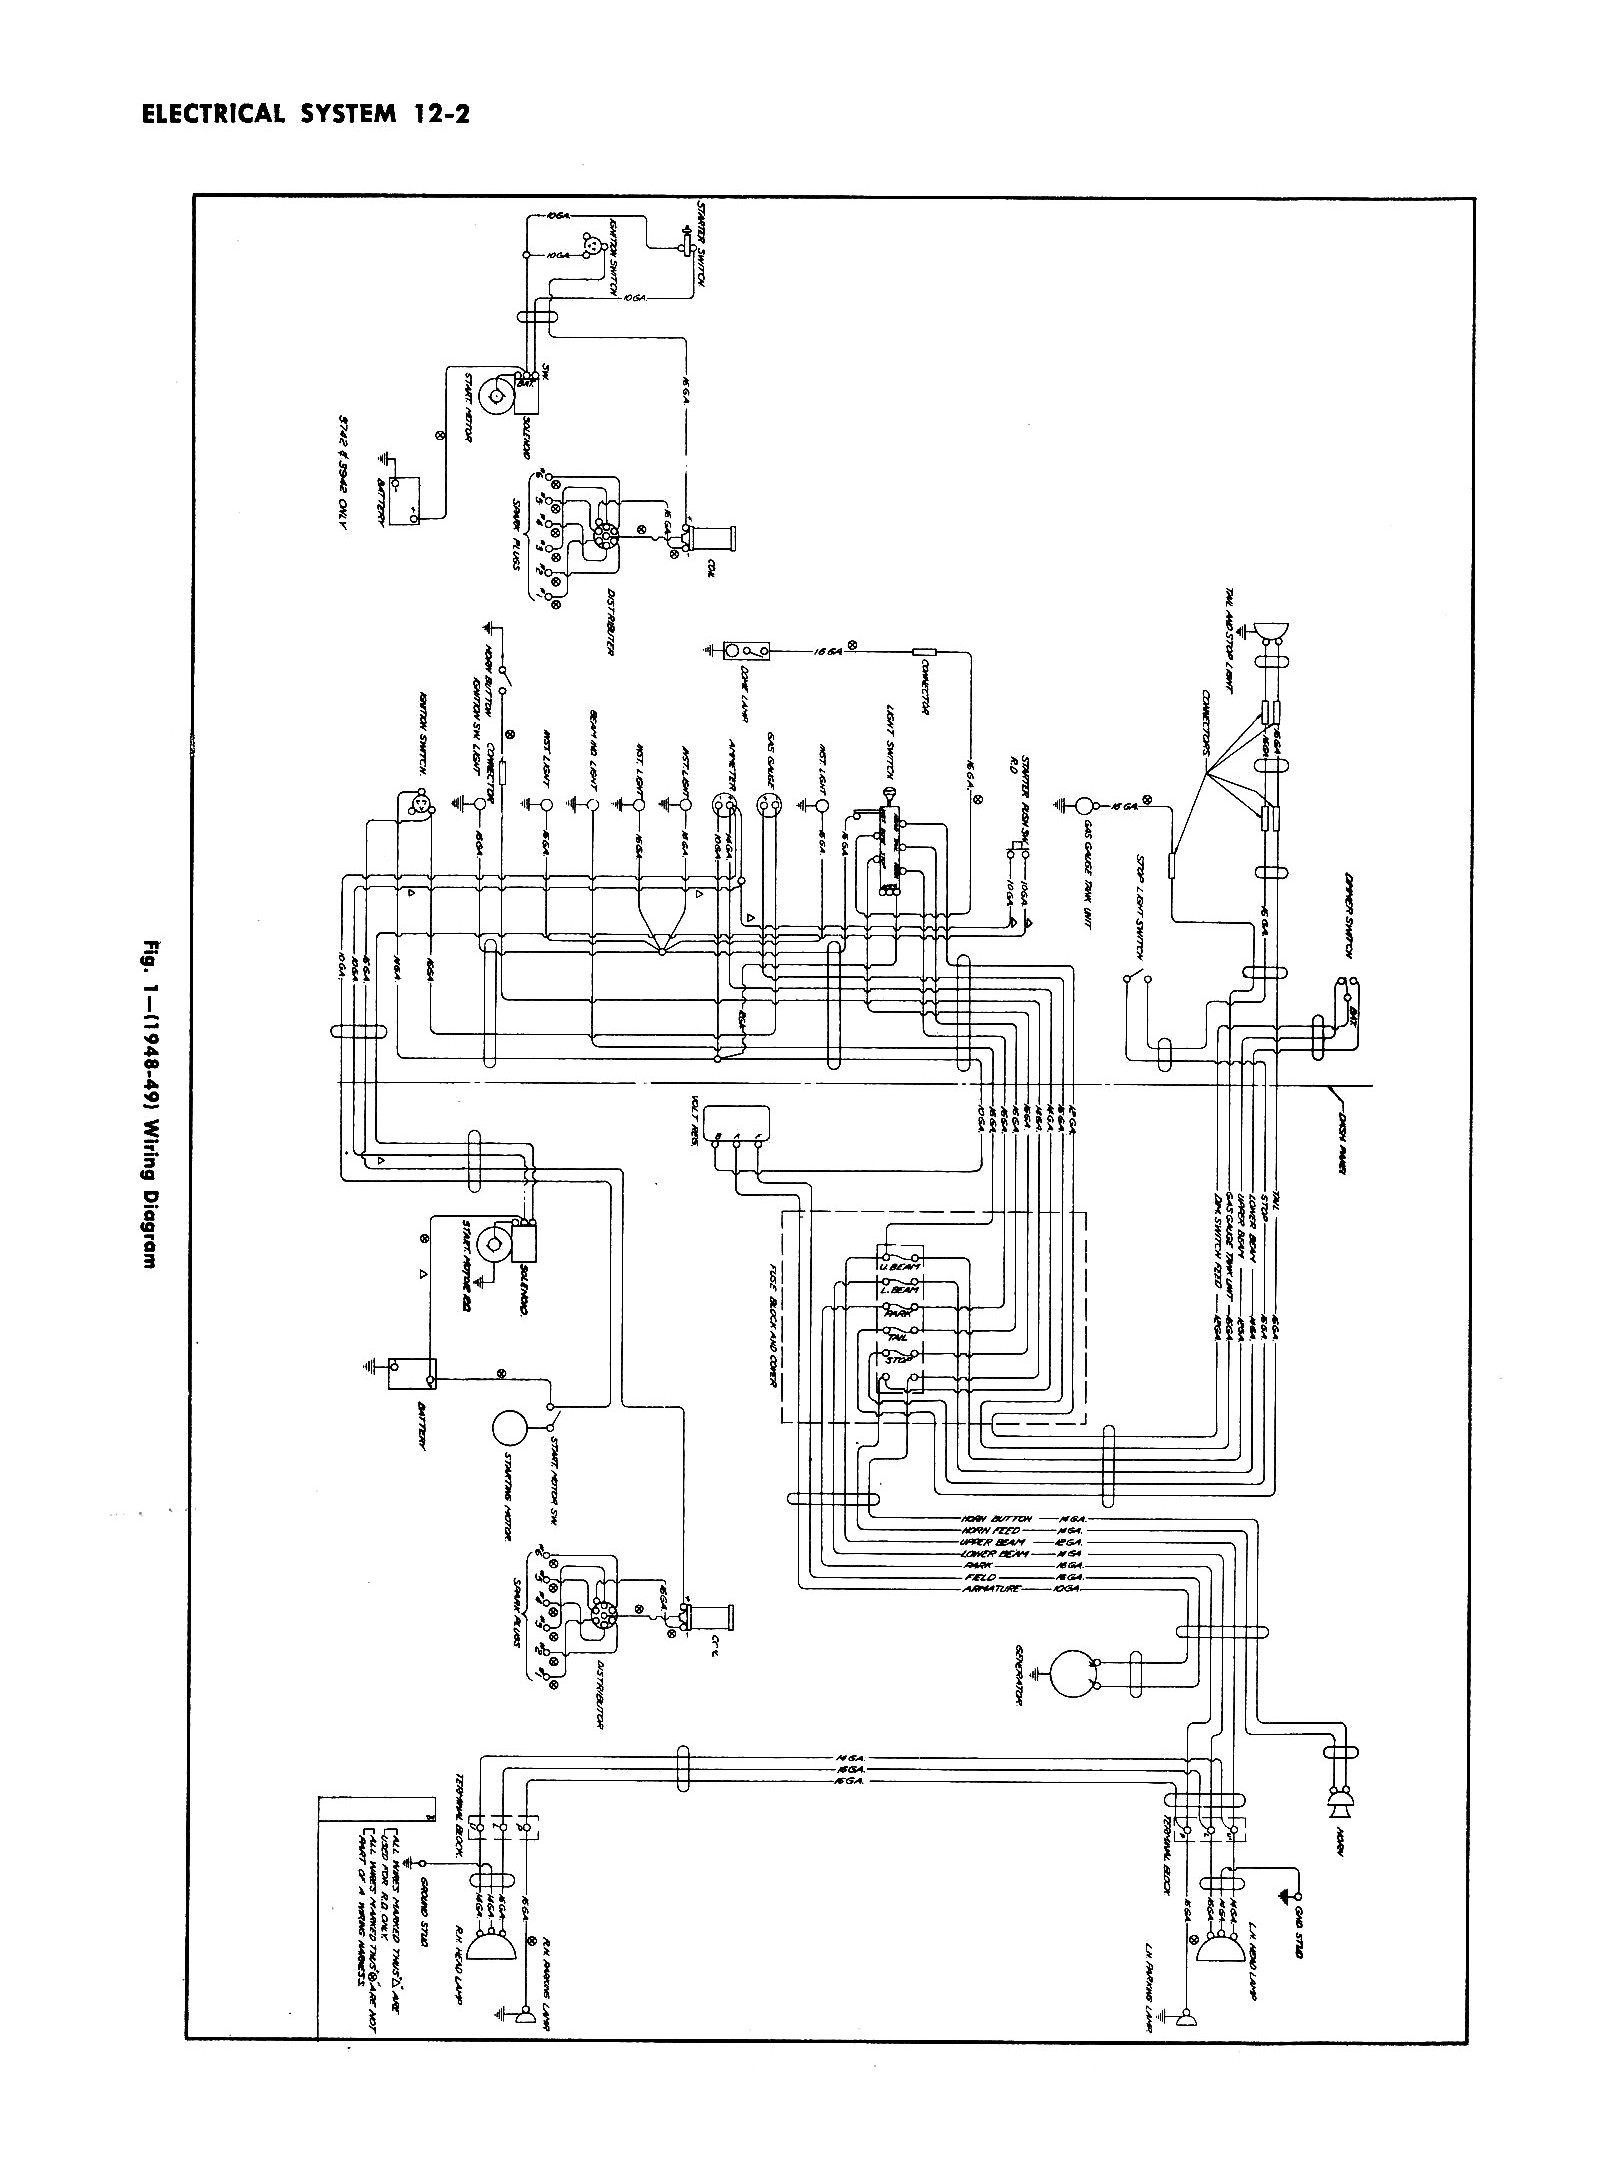 1976 Chevy Truck Wiring Diagram Chevy Wiring Diagrams Of 1976 Chevy Truck Wiring Diagram